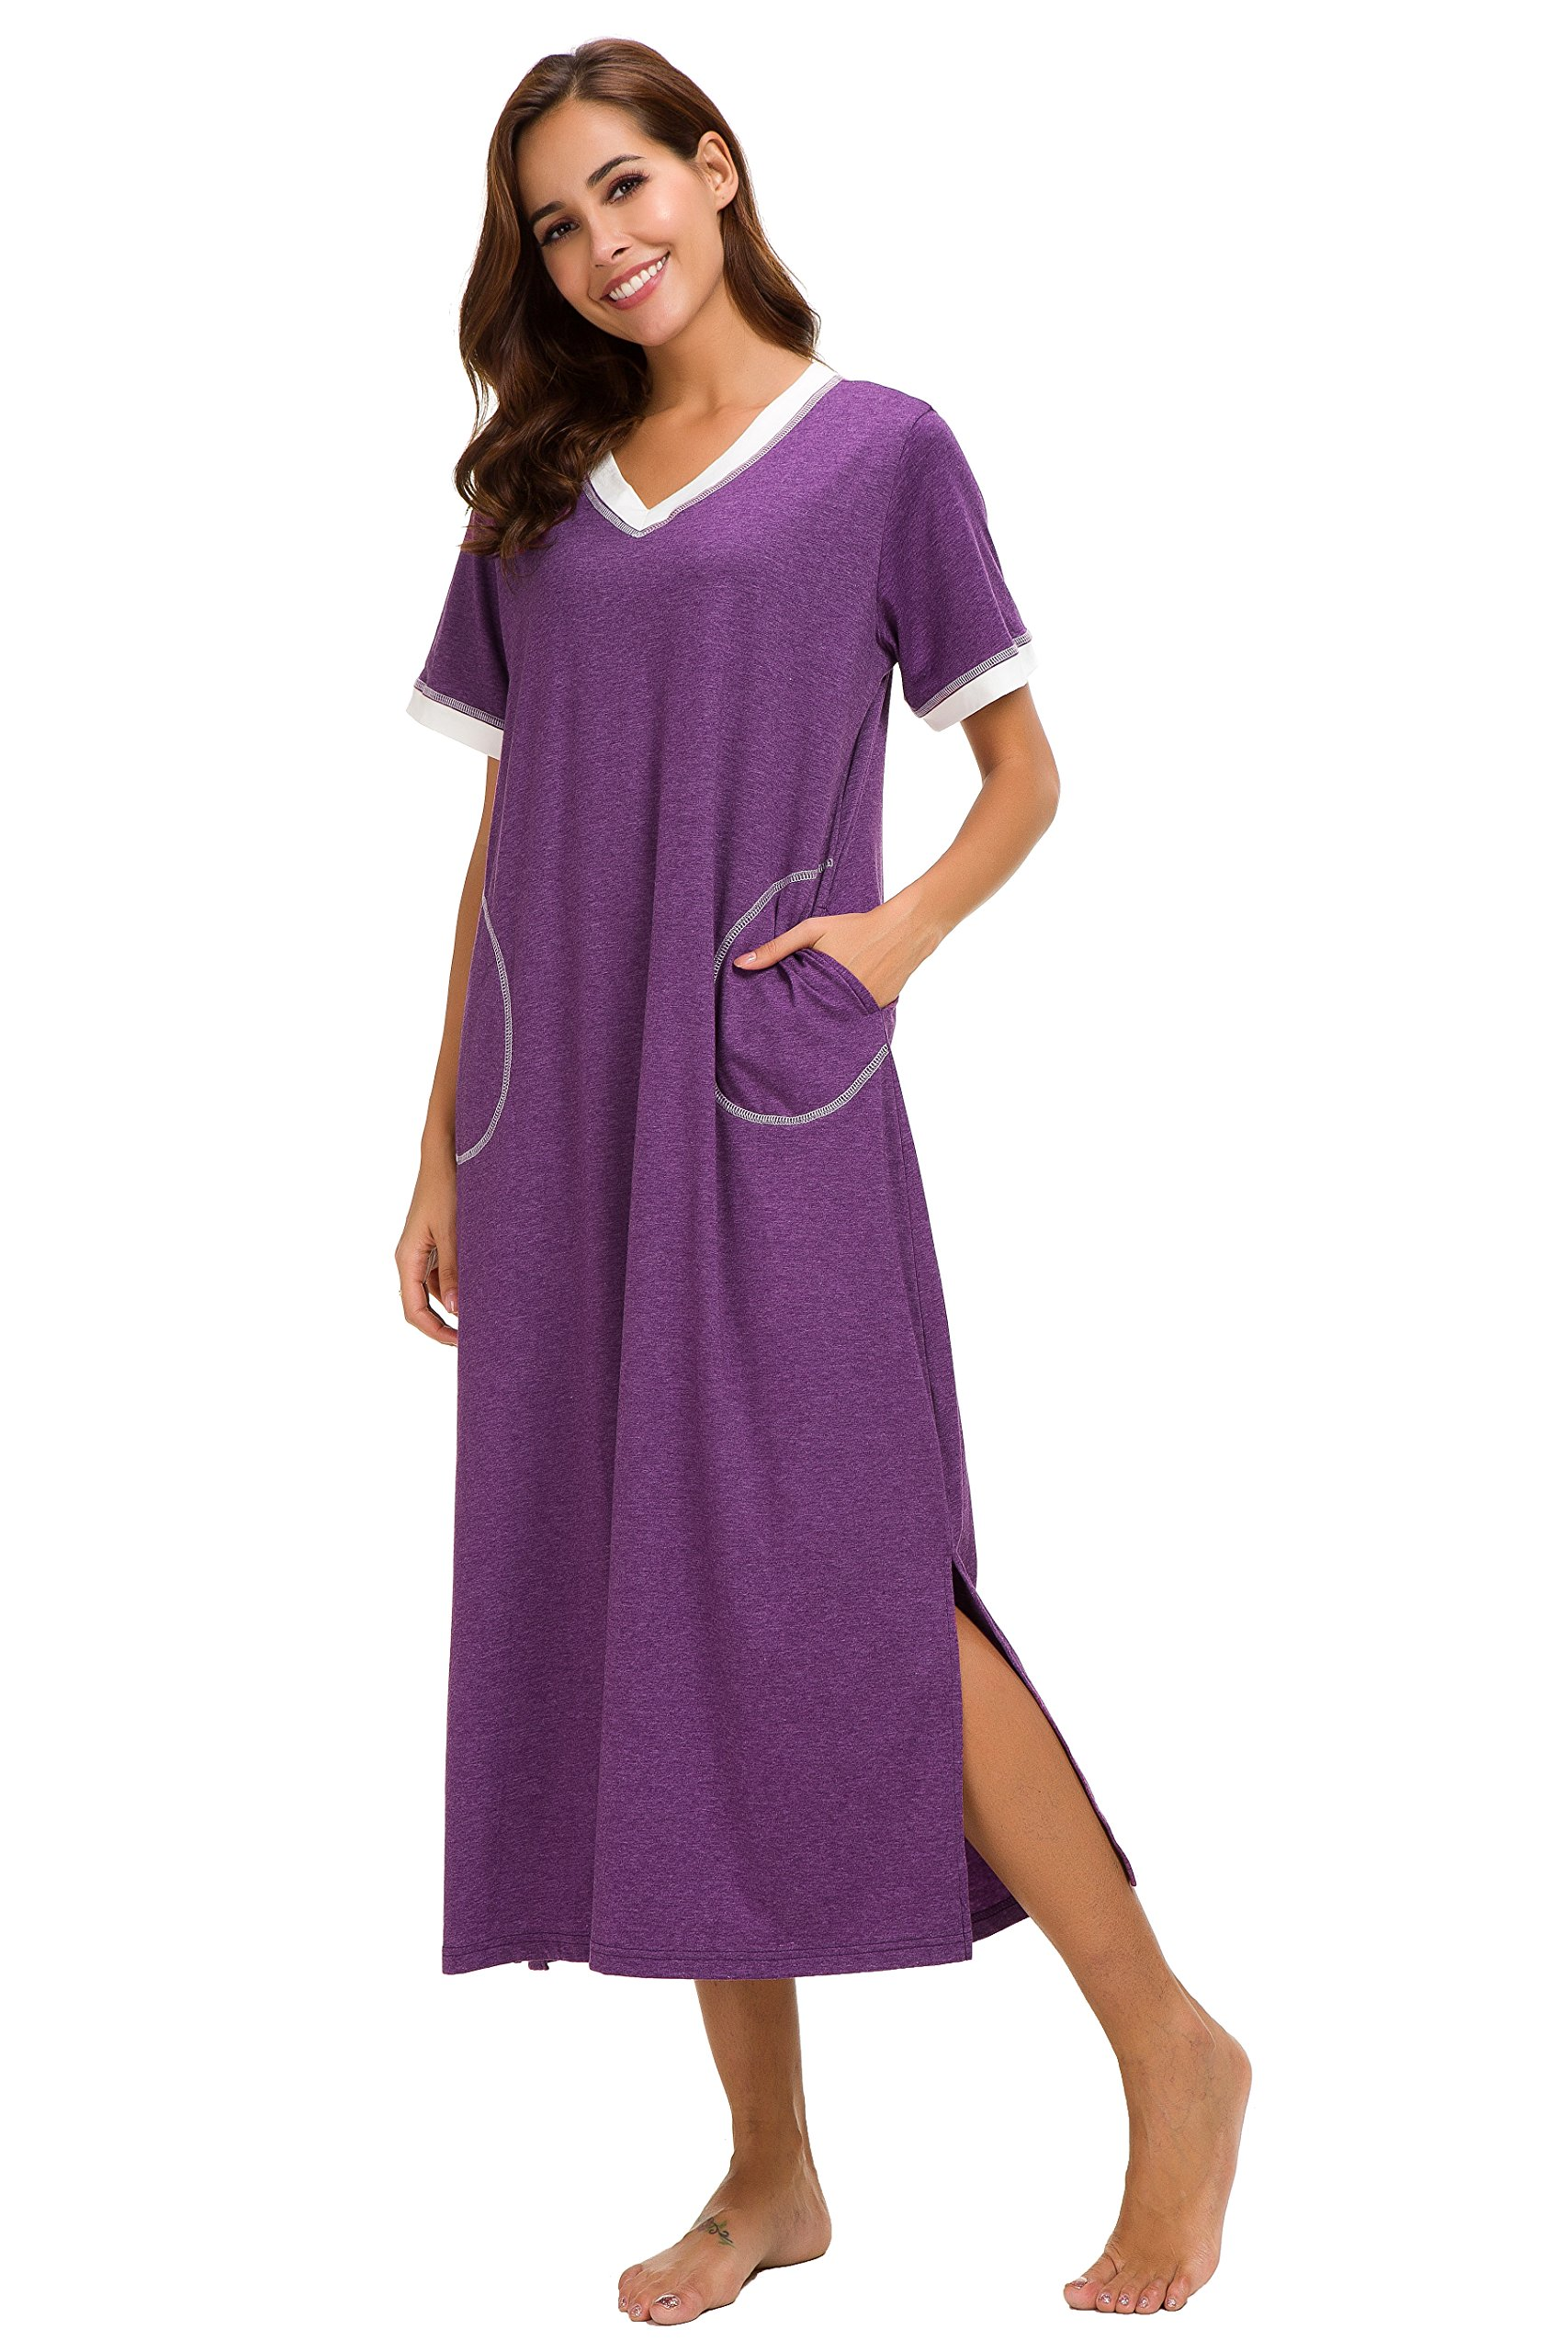 Supermamas Long Nightgown Womens Cotton Knit Short Sleeve Nightshirt with Pockets S-XXL (Eggplant, XL)